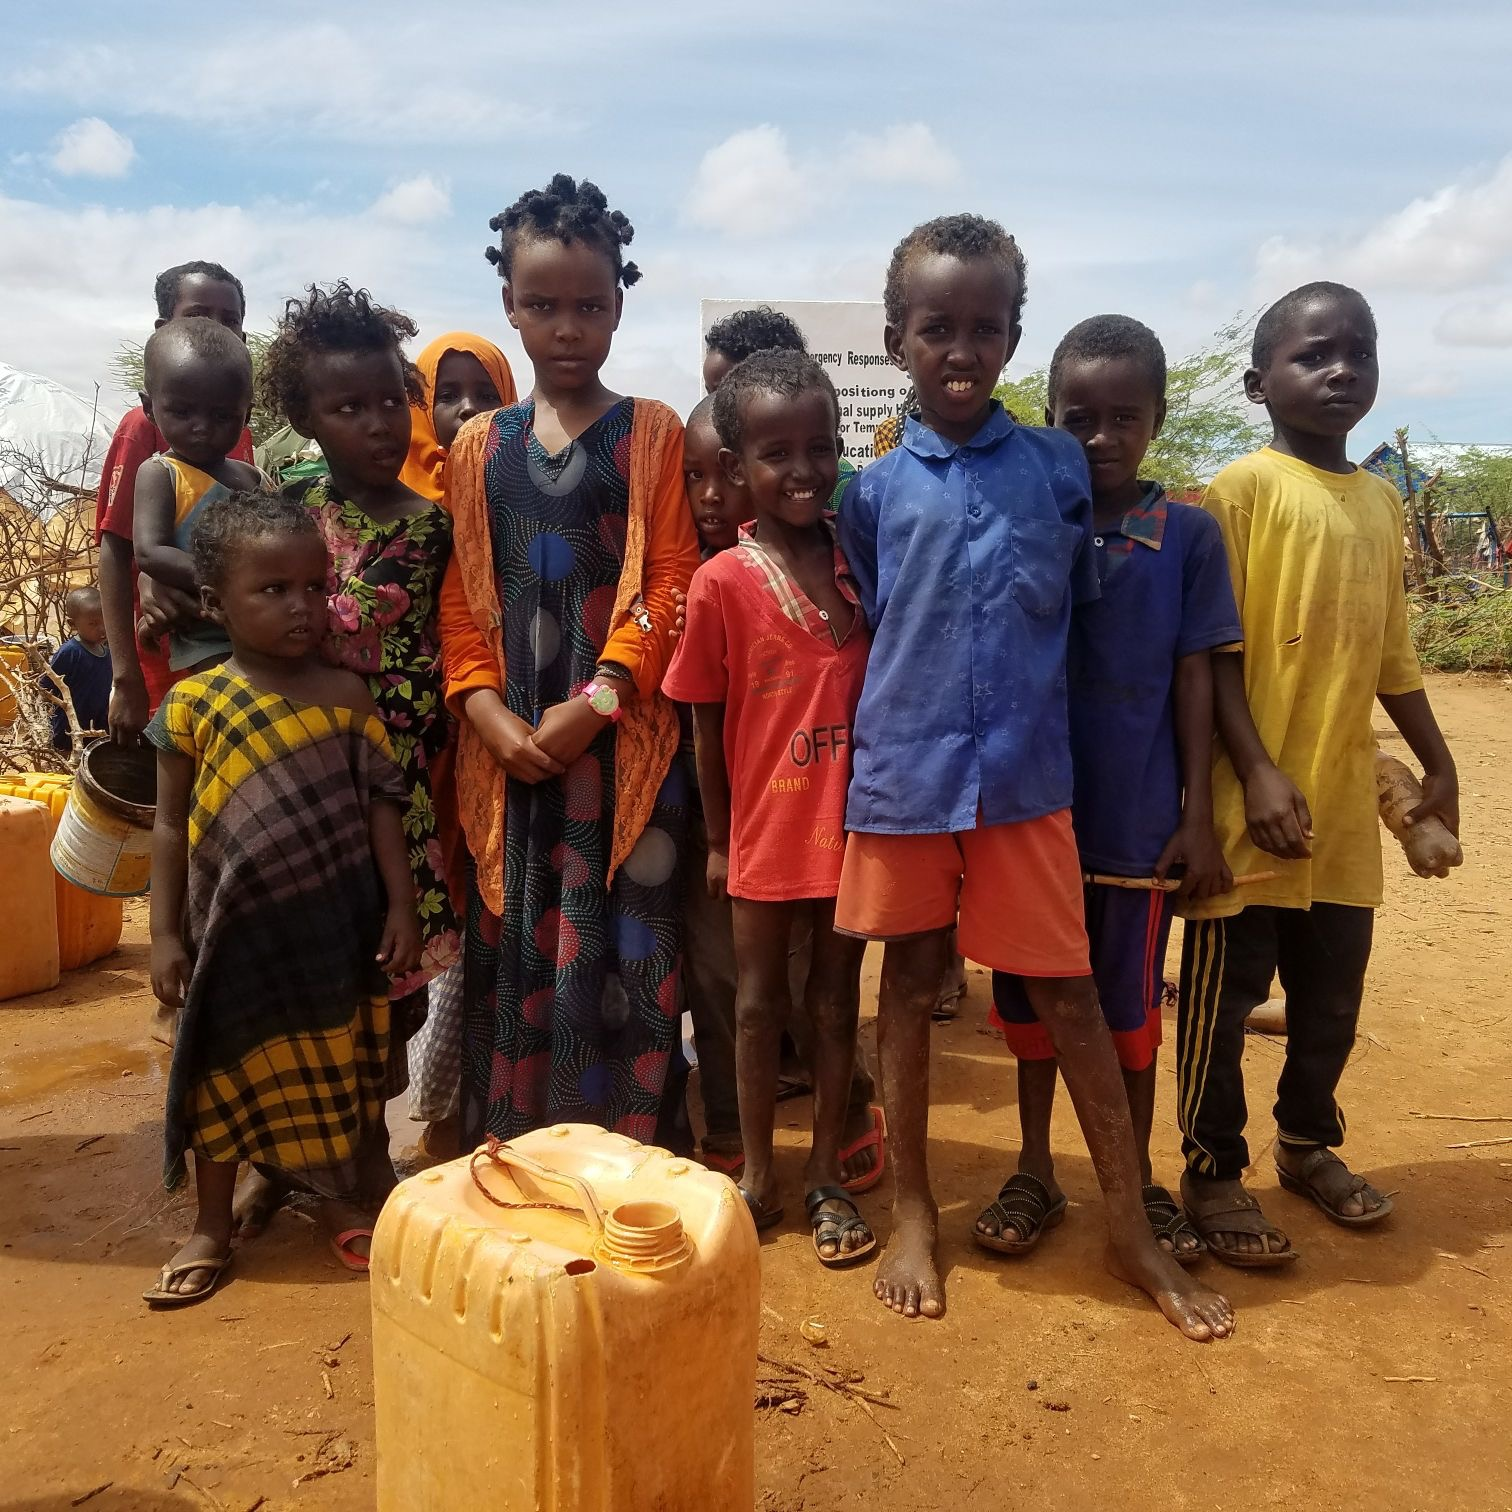 A group of children in brightly coloured clothing stand in front of a jerry can